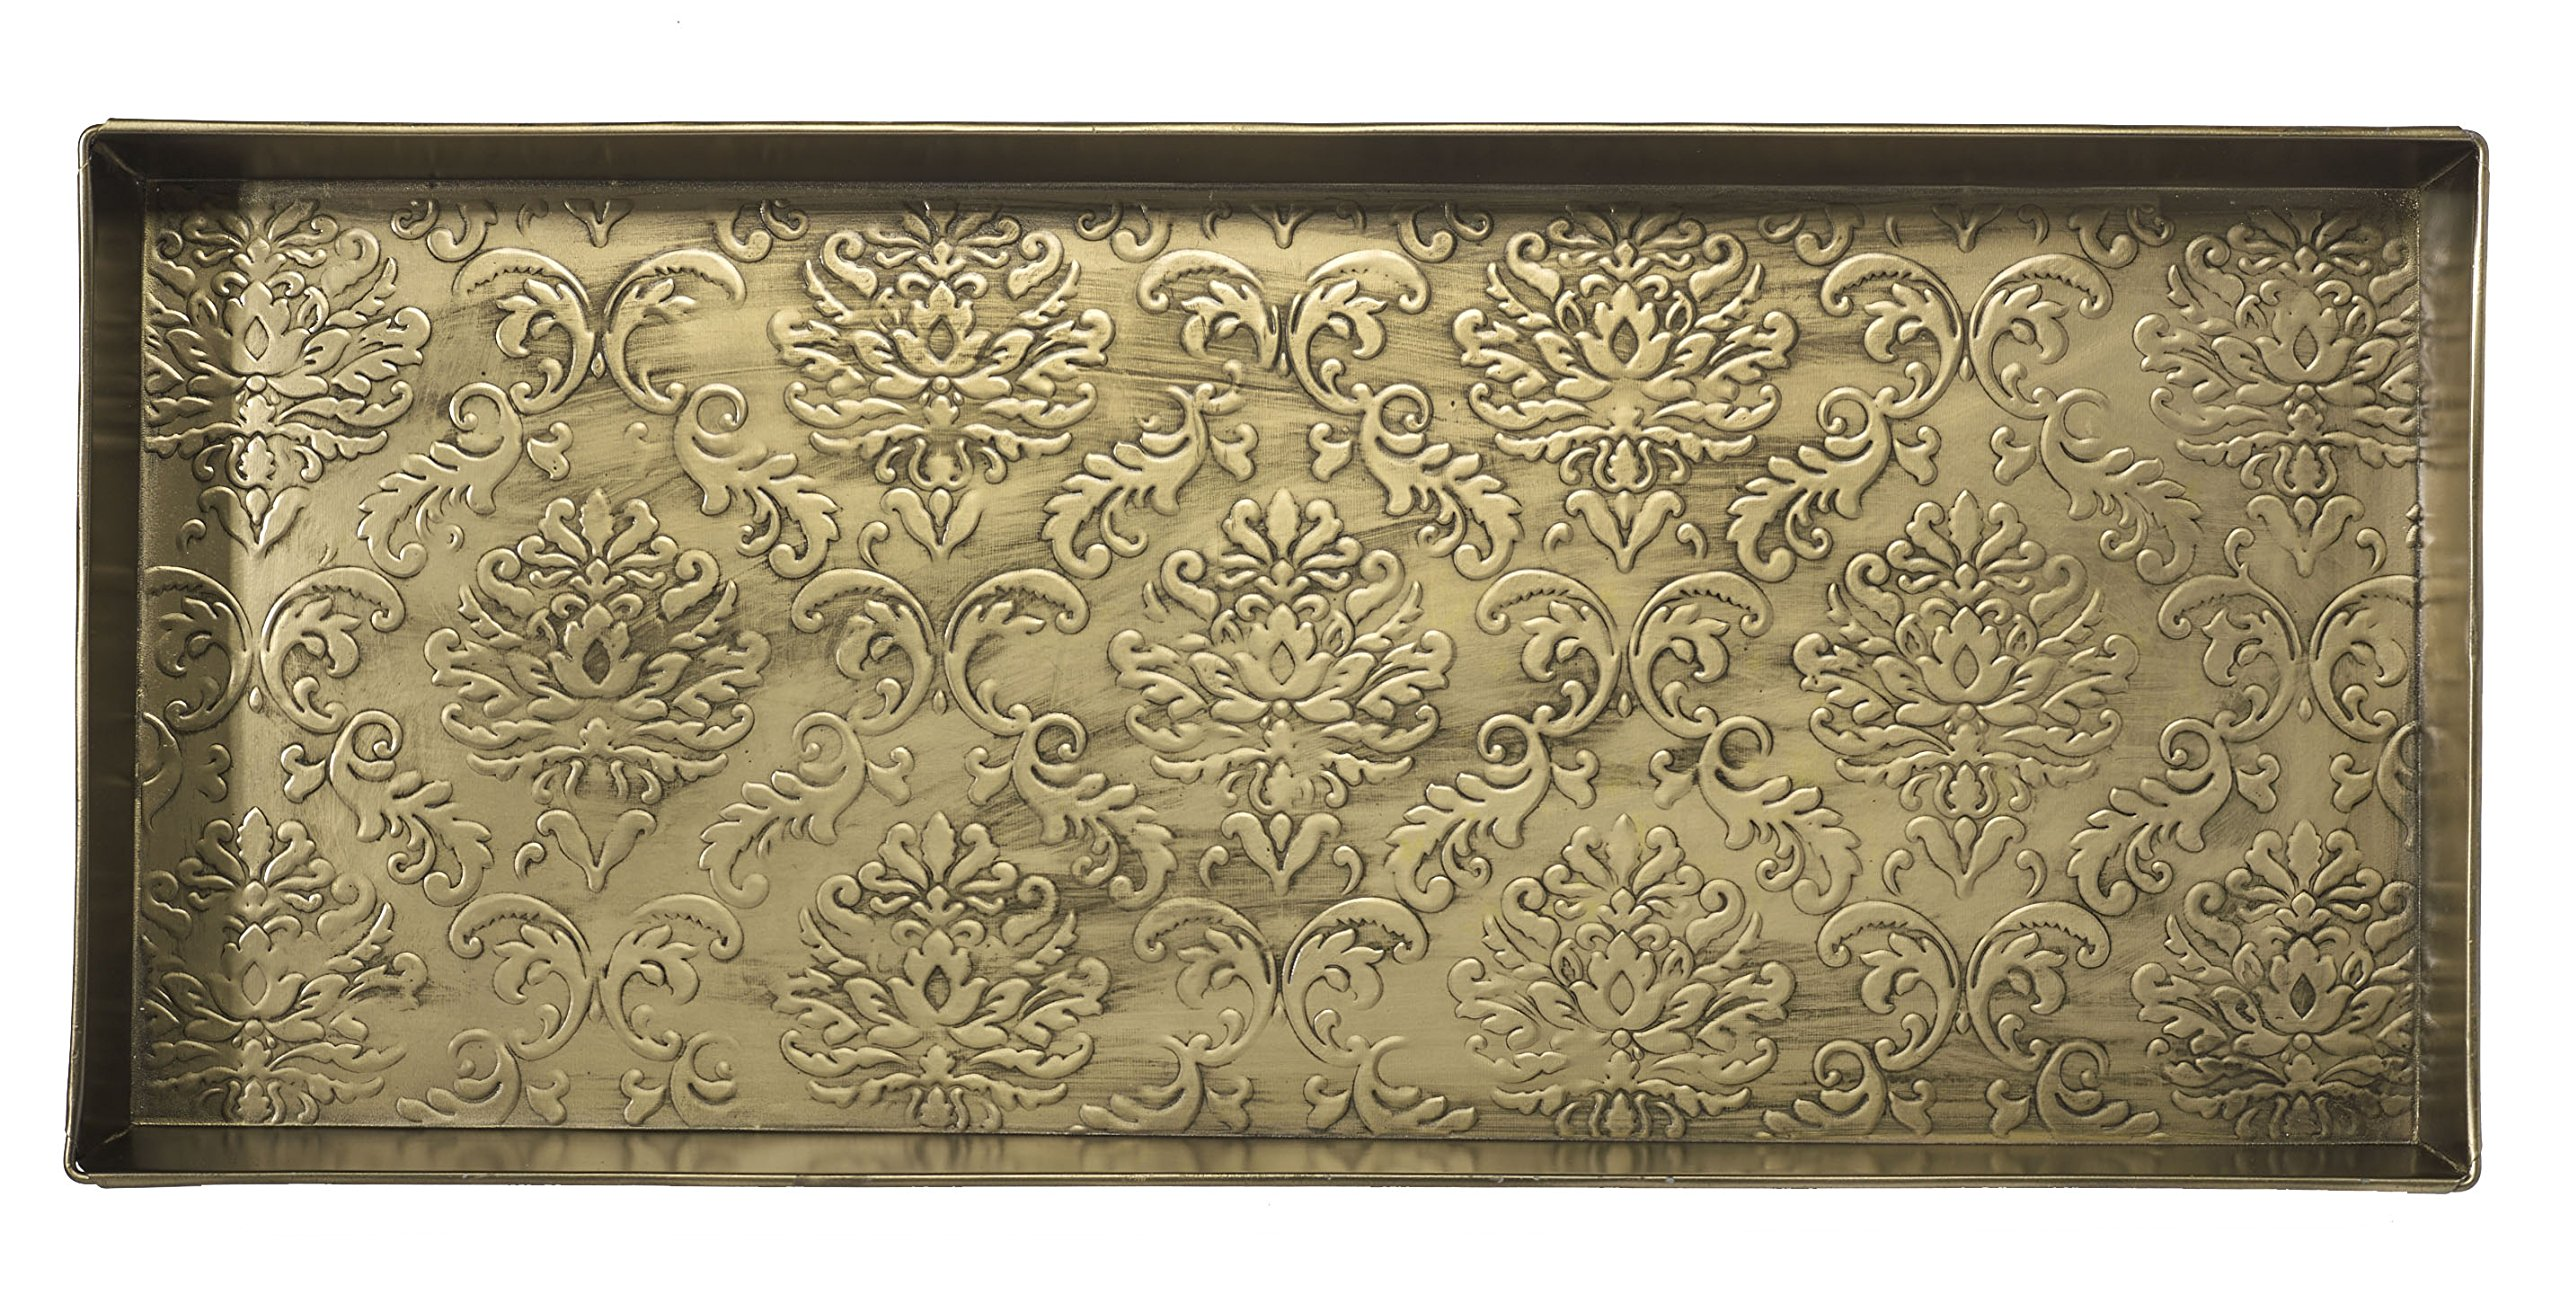 HF by LT Damask Pattern Metal Boot Tray, 30'' by 13'', Antique Brass Finish